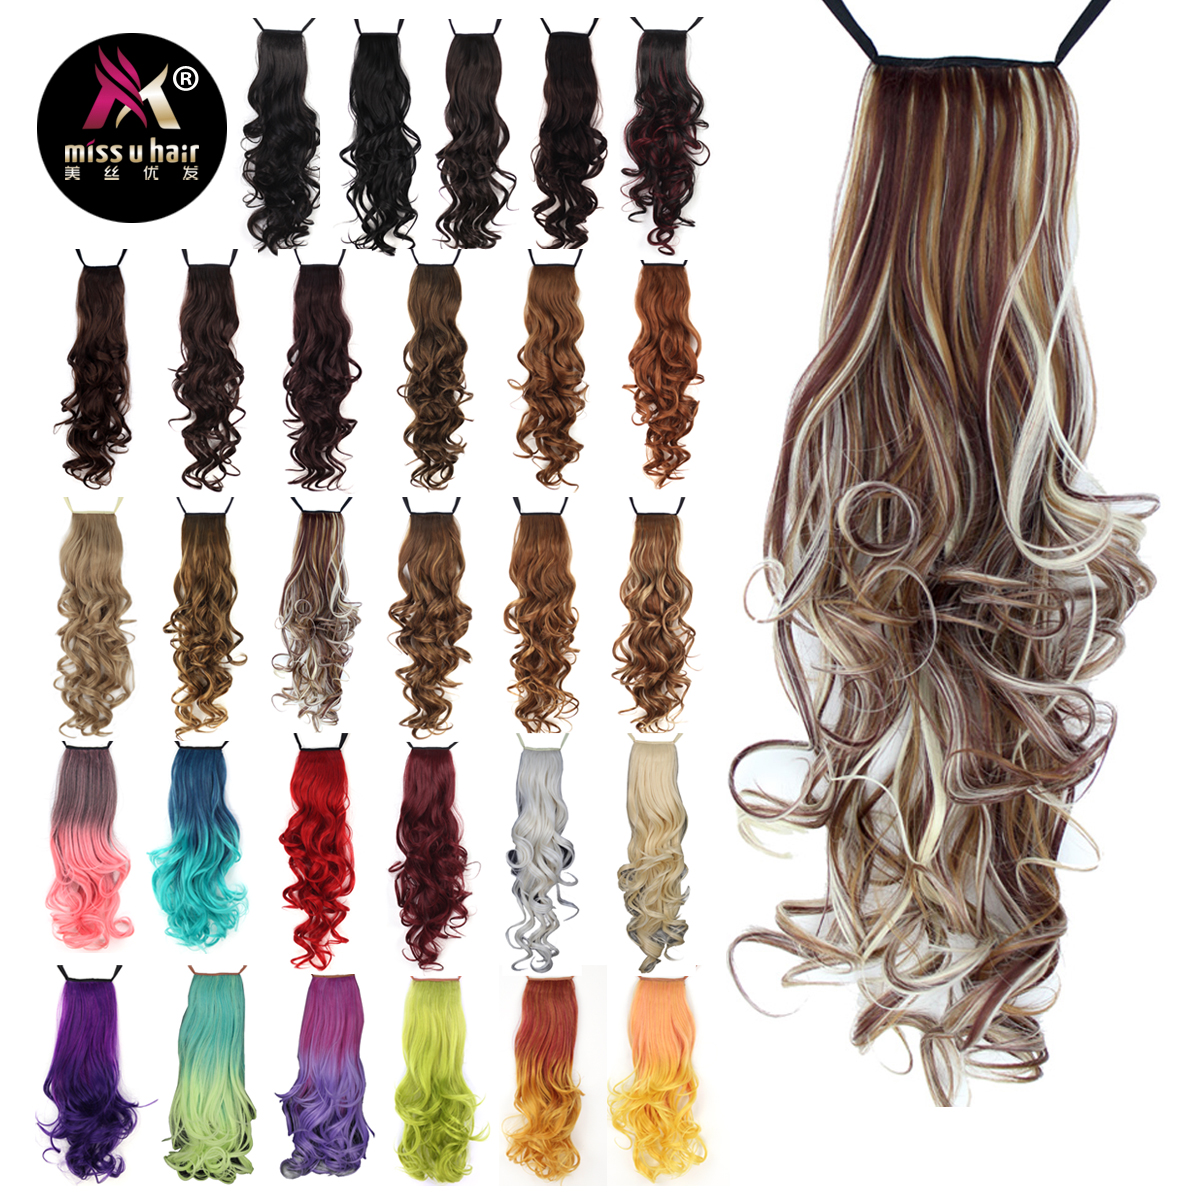 "Beautiful Miss U Hair 24"" 60cm Synthetic Long Curly Ribbon Drawstring Ponytails Party Wig Halloween Hairpiece Clip In Hair Extensions Easy To Repair"